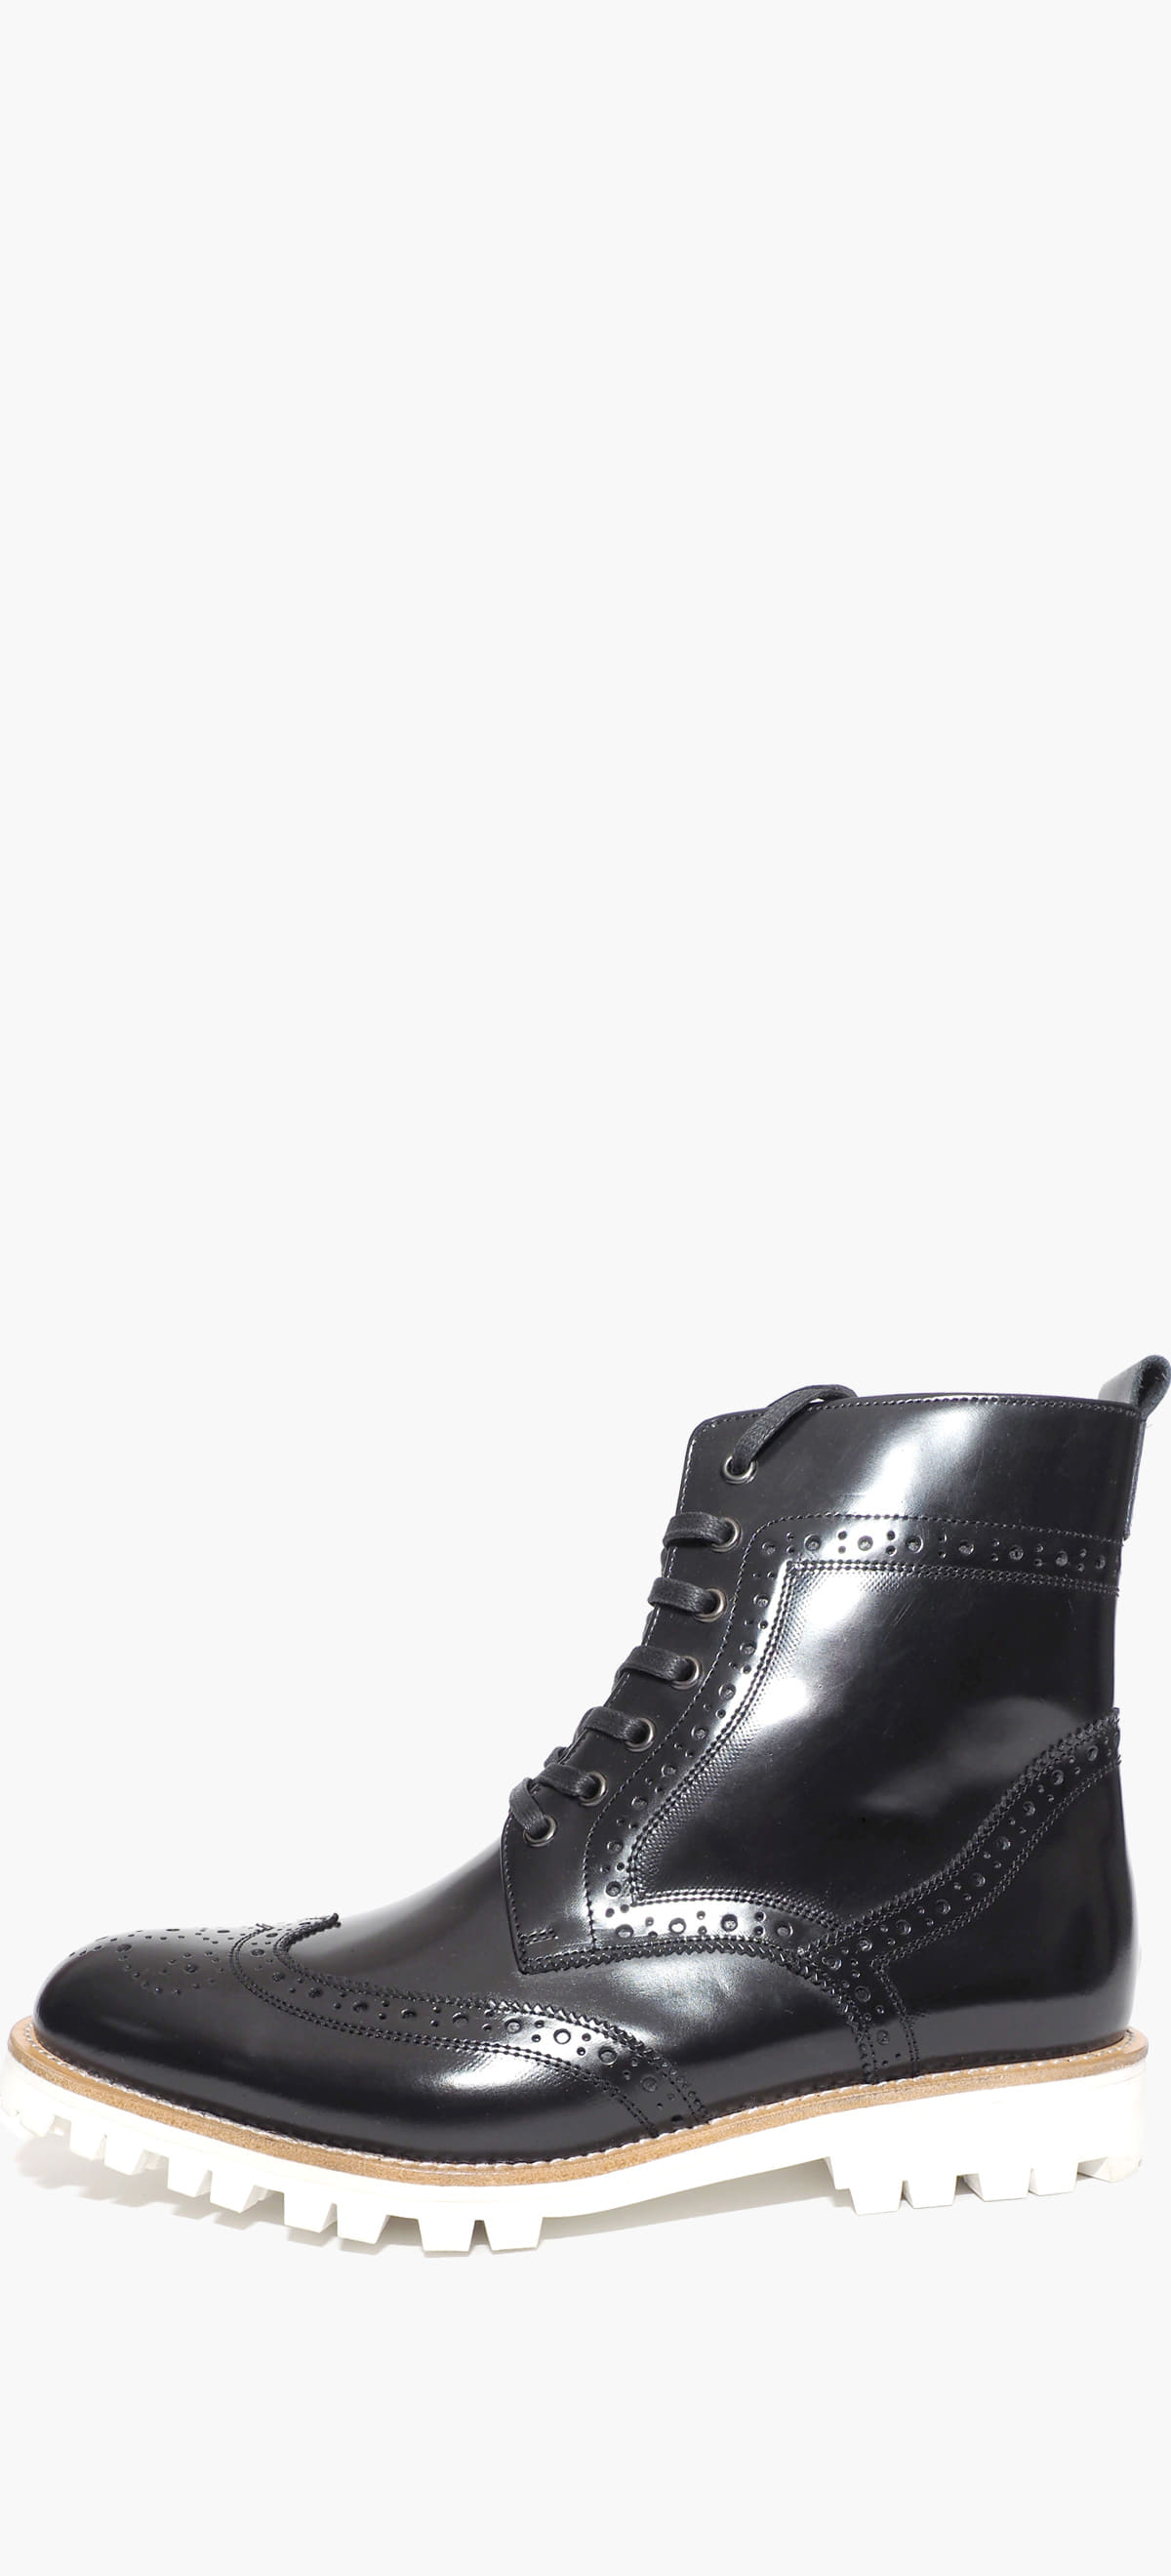 Wing Tip Boots 2070-08 Black Box